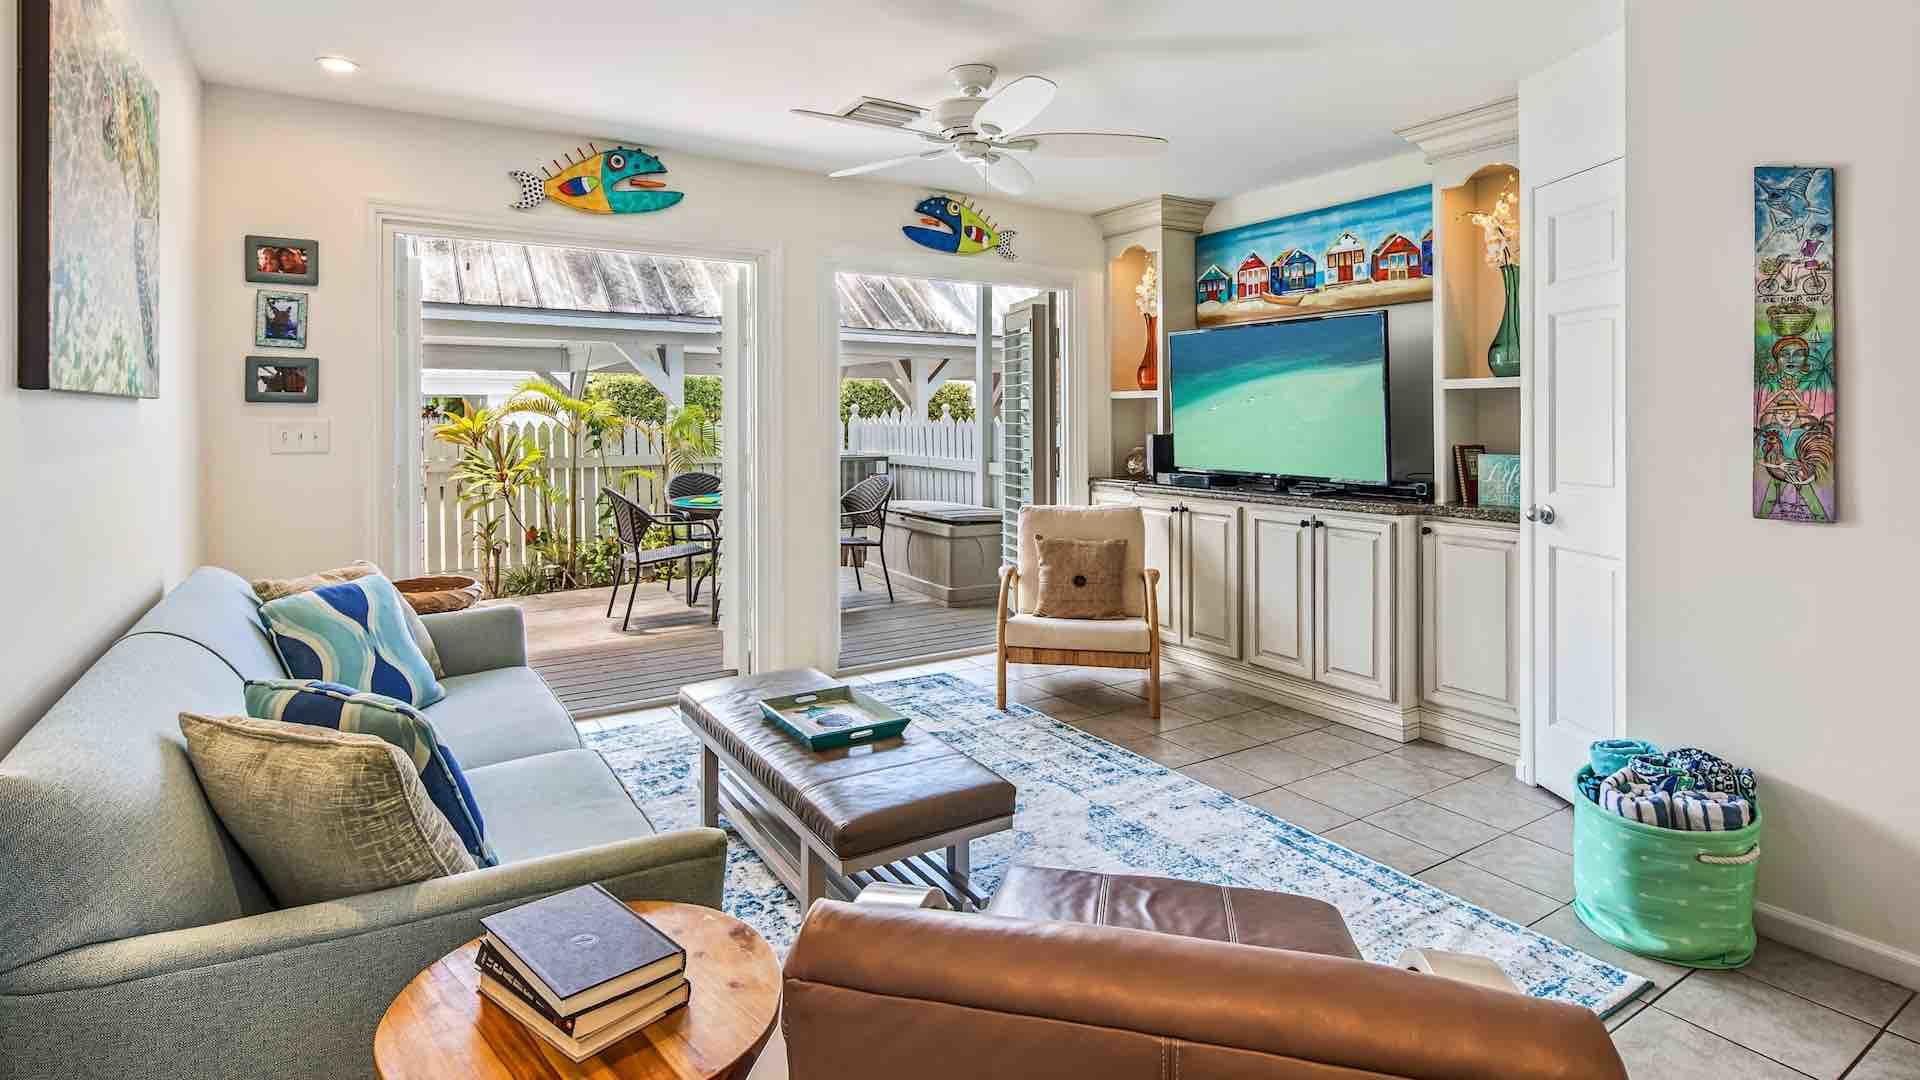 Key West 2 bedroom vacation rental with pool